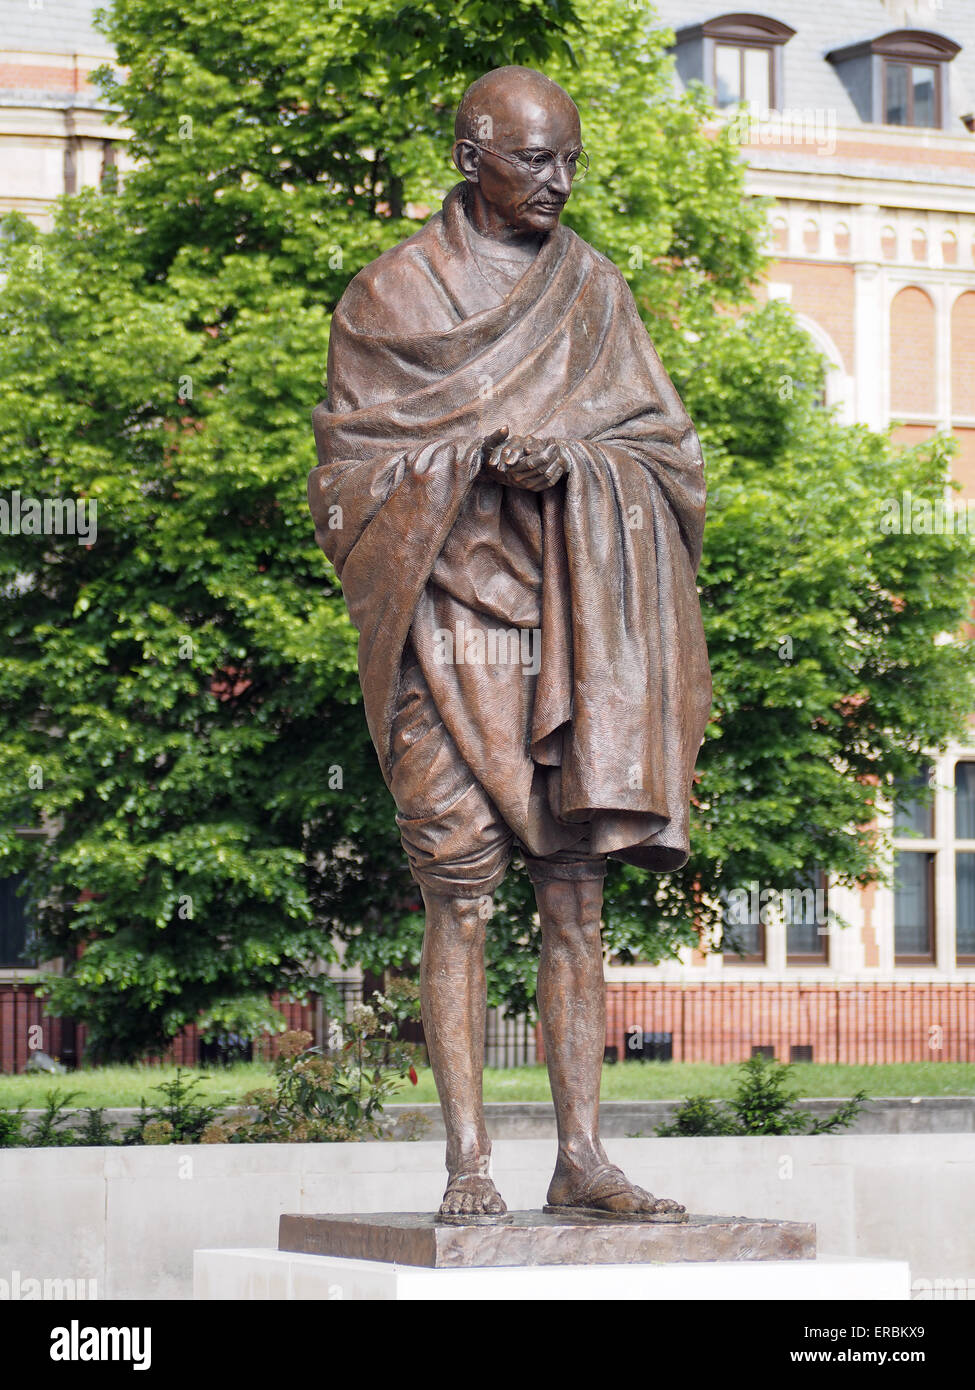 Front view of the statue of Mahatma Gandhi in Parliament Square London - Stock Image